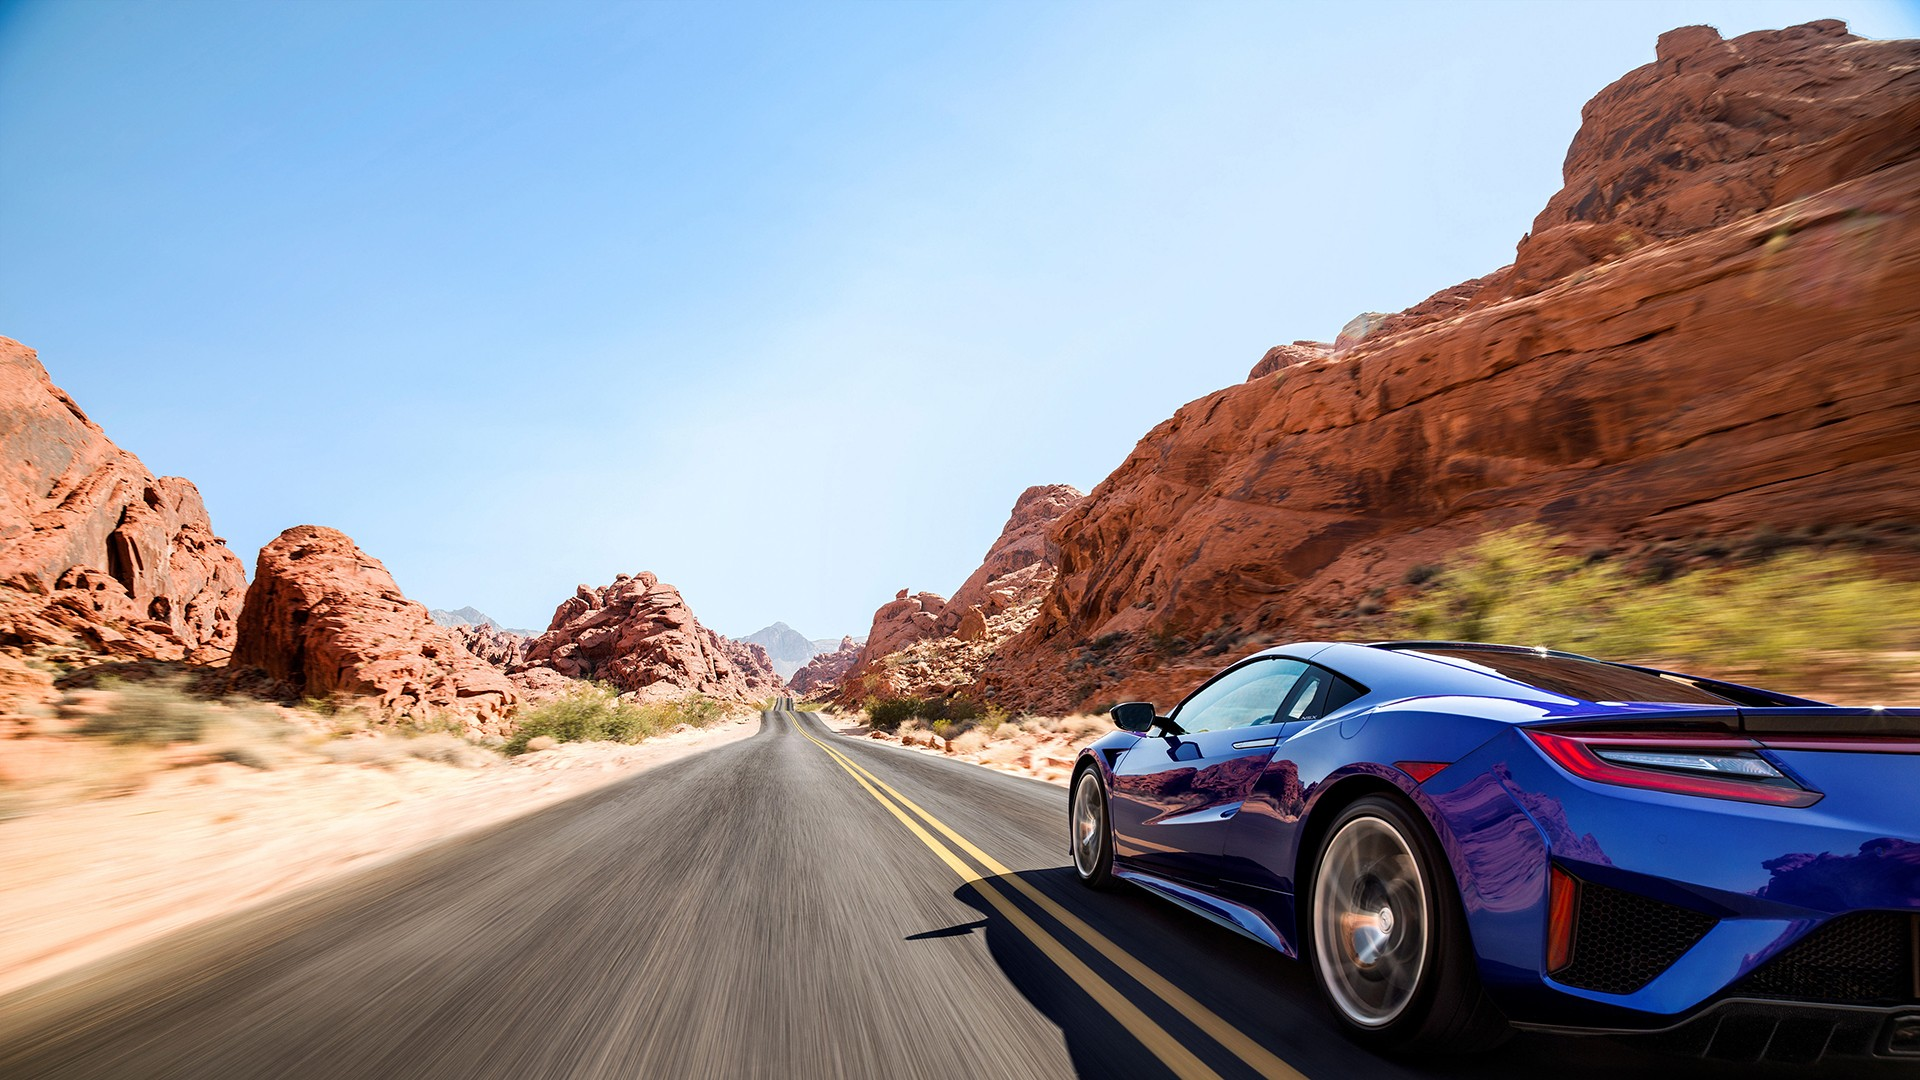 Car Stunt Wallpaper Car Sports Car Blue Road Desert Acura Nsx Wallpapers